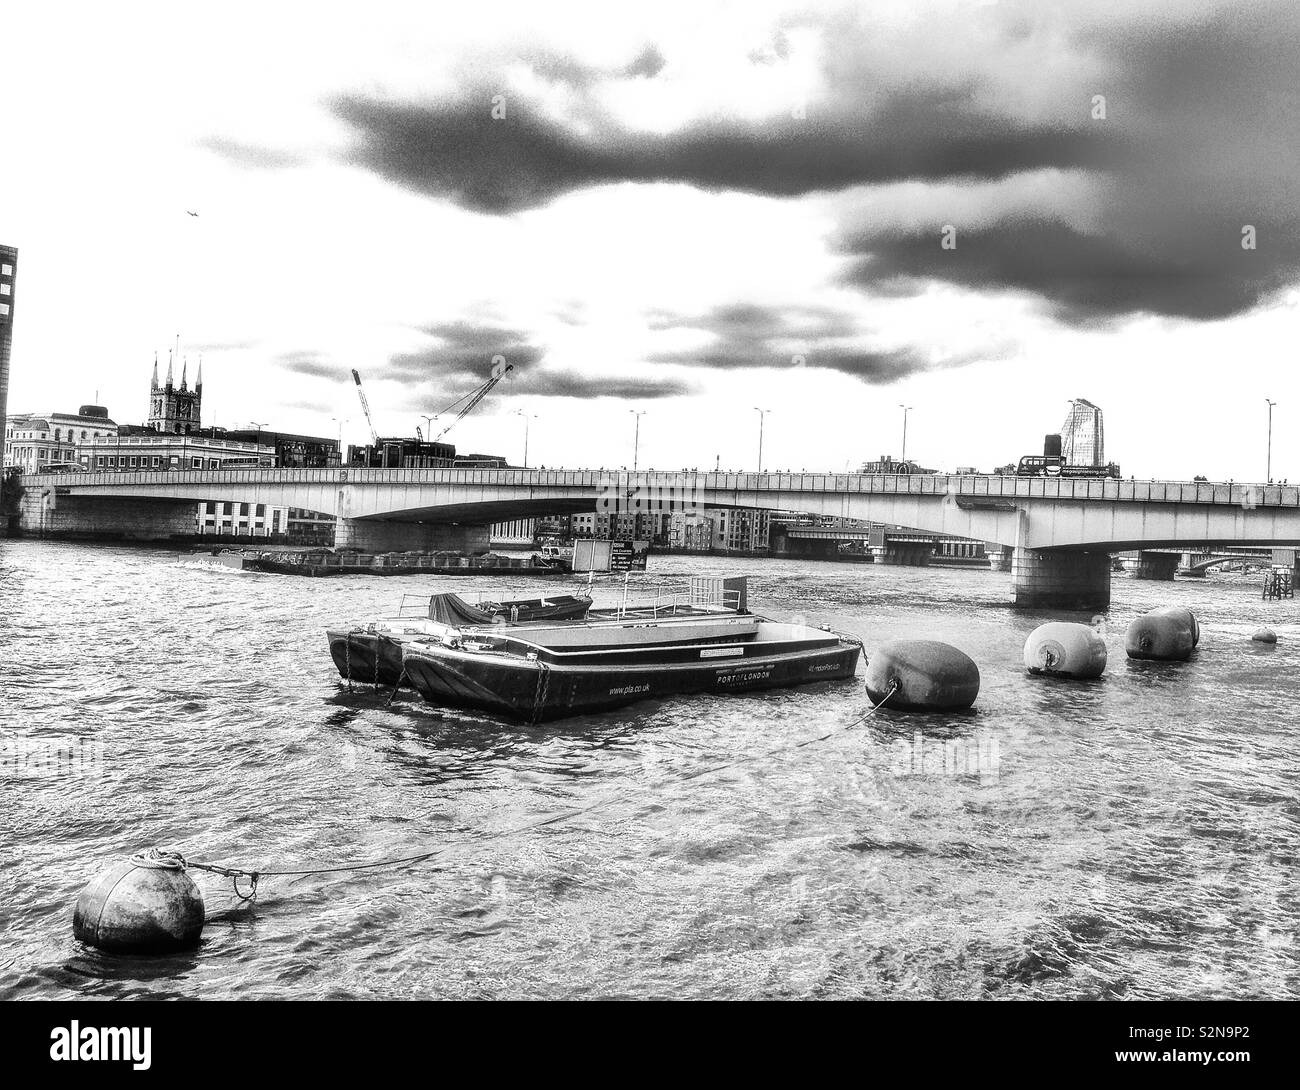 The River Thames in London, England, on an overcast day, looking towards London Bridge. - Stock Image